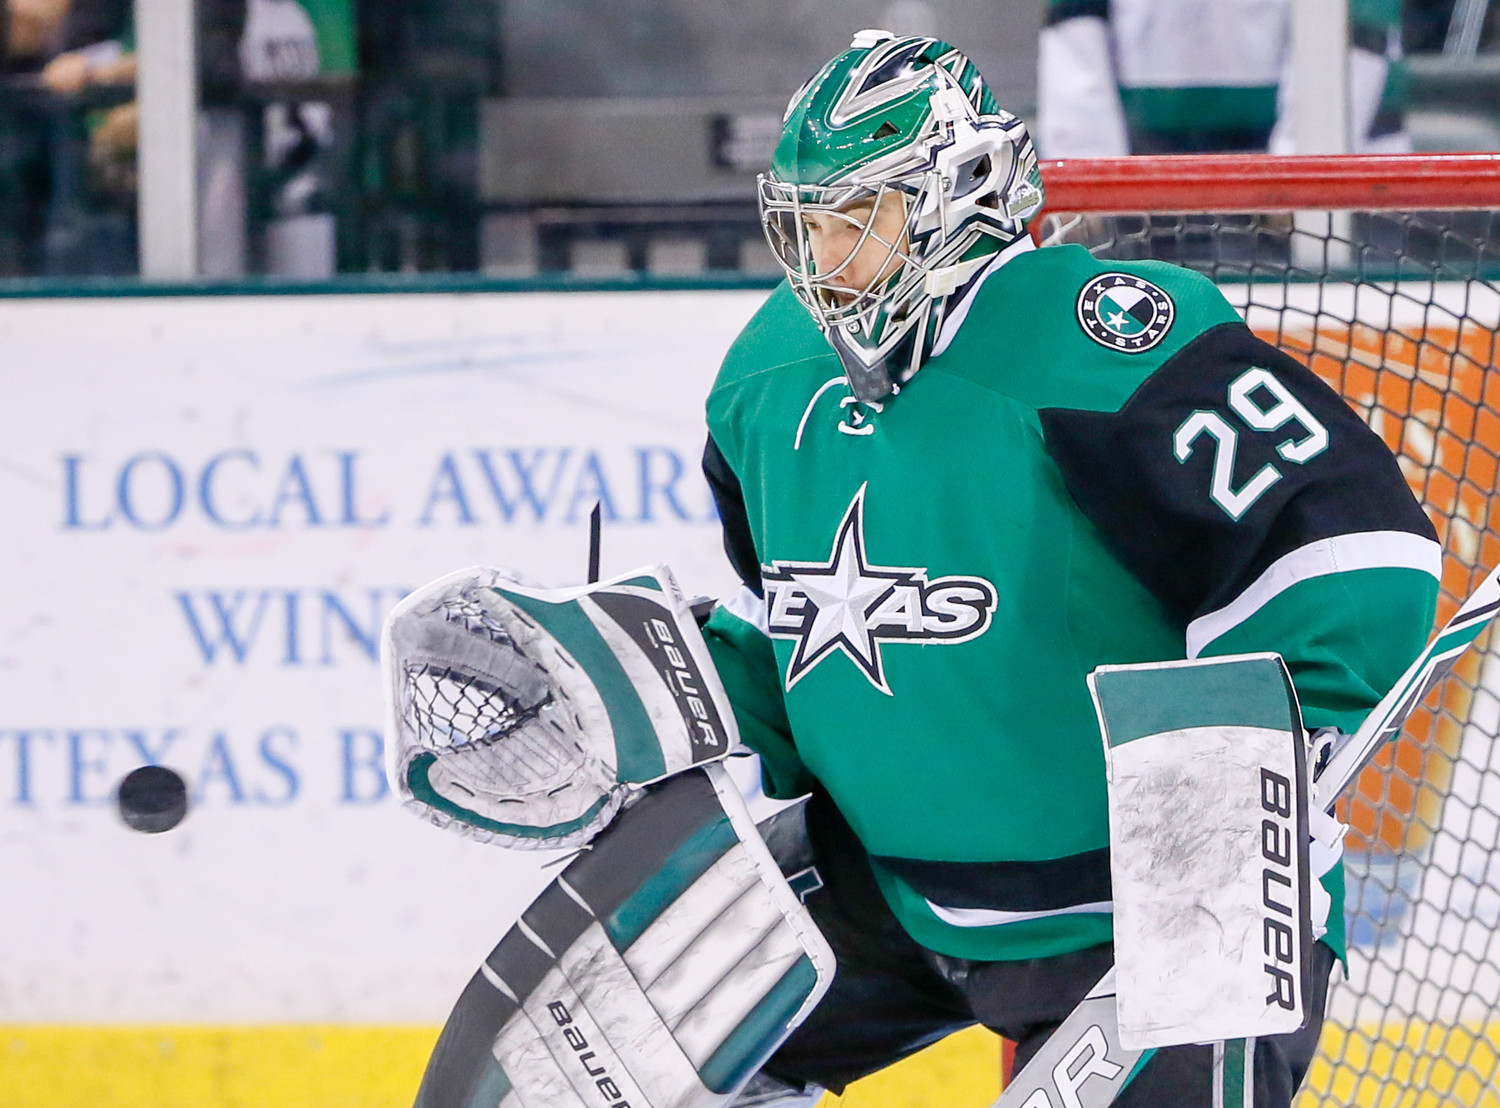 Mike McKenna and the Stars take on the Tucson Roadrunners in the second round of the Calder Cup playoffs. The Texas goalie stopped the last 91 shots he faced in the opening series win against the Ontario Reign.